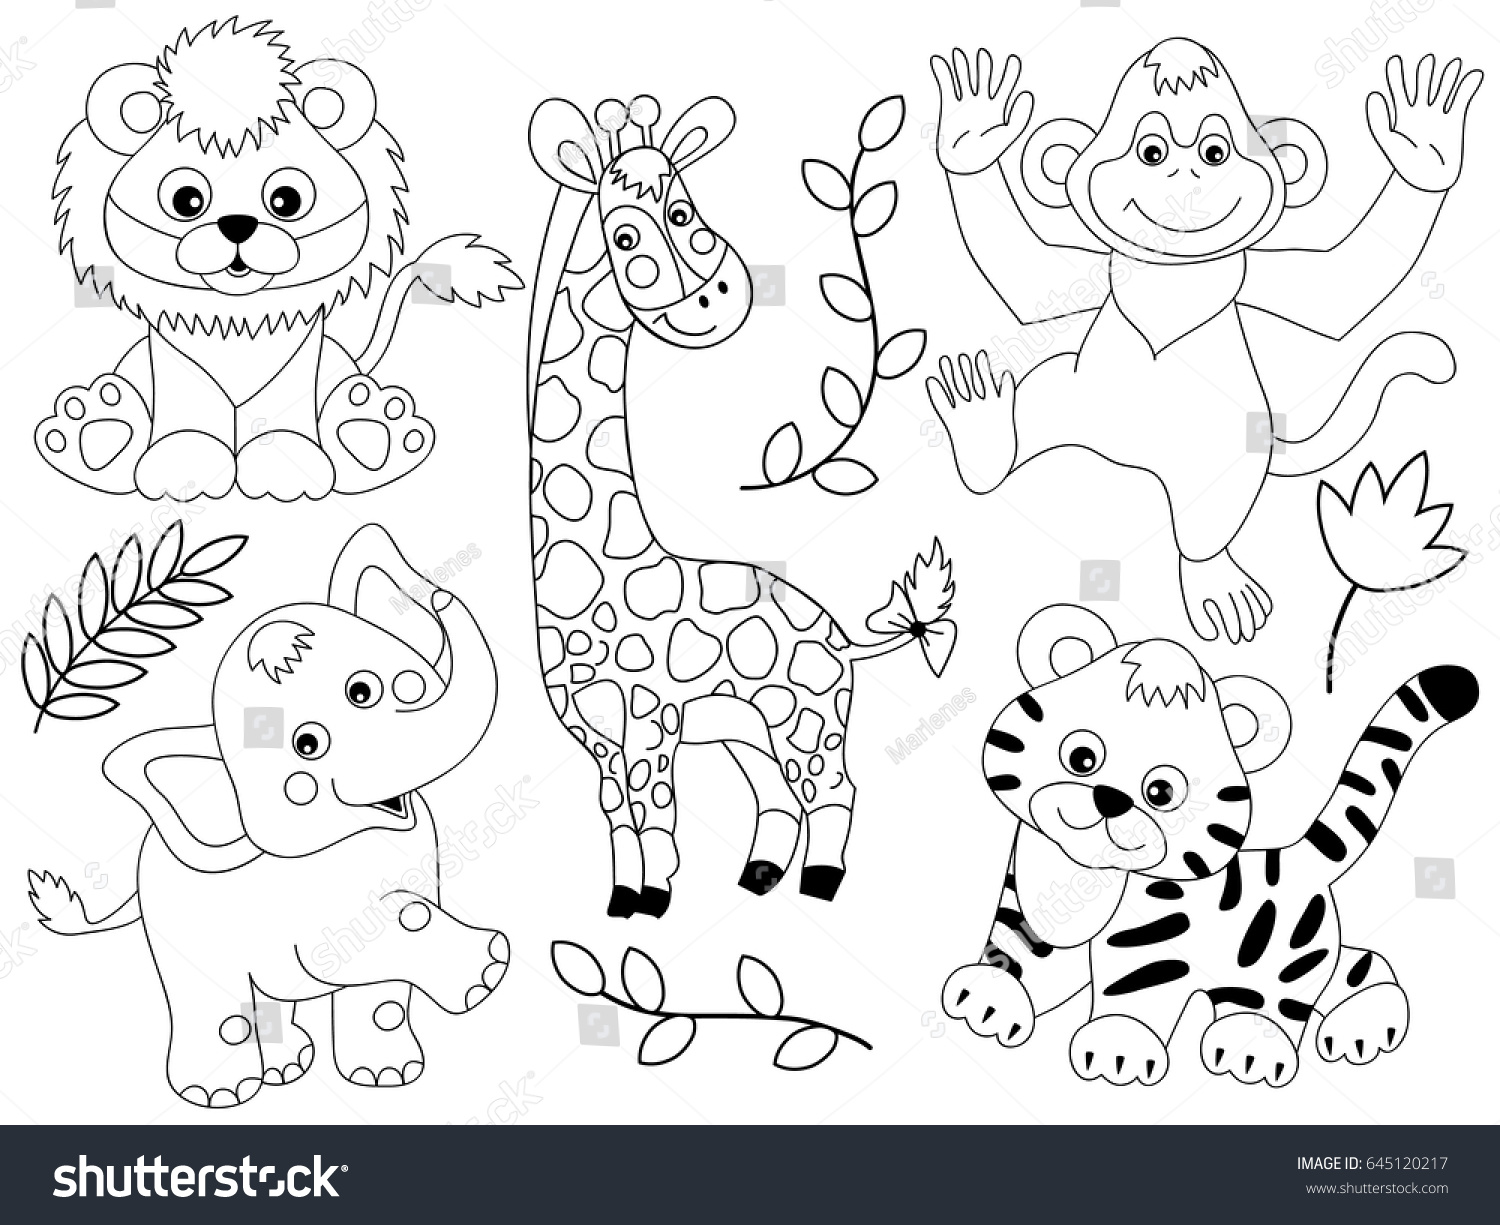 Jungle animals clipart black and white 6 » Clipart Station.